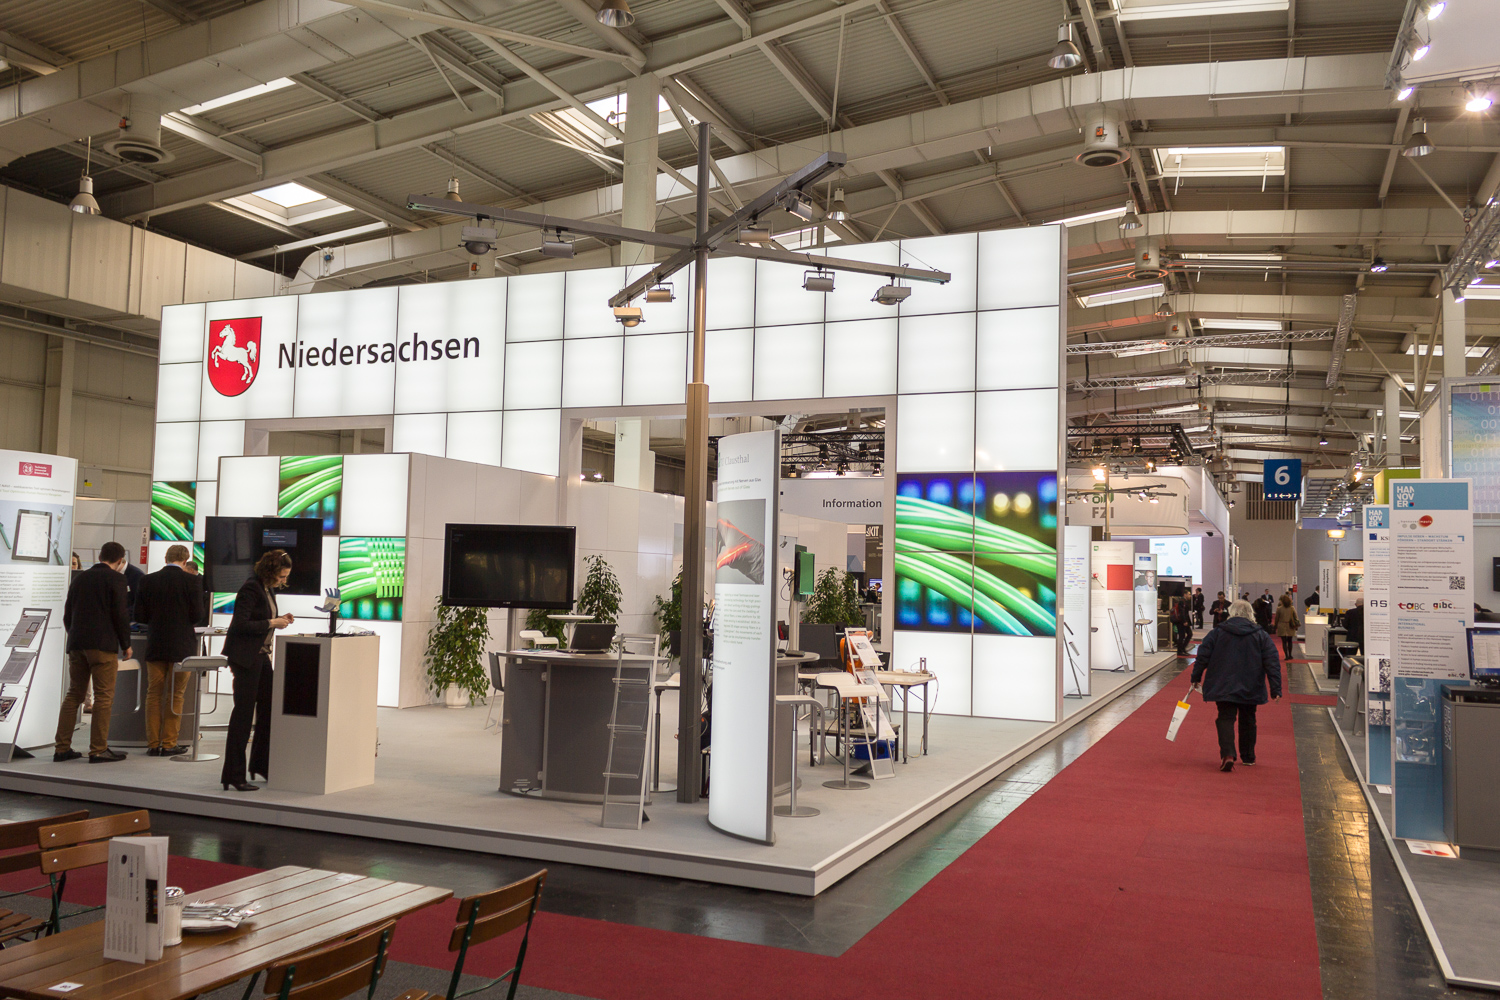 Joint stand of the state Lower Saxony at Cebit 2016